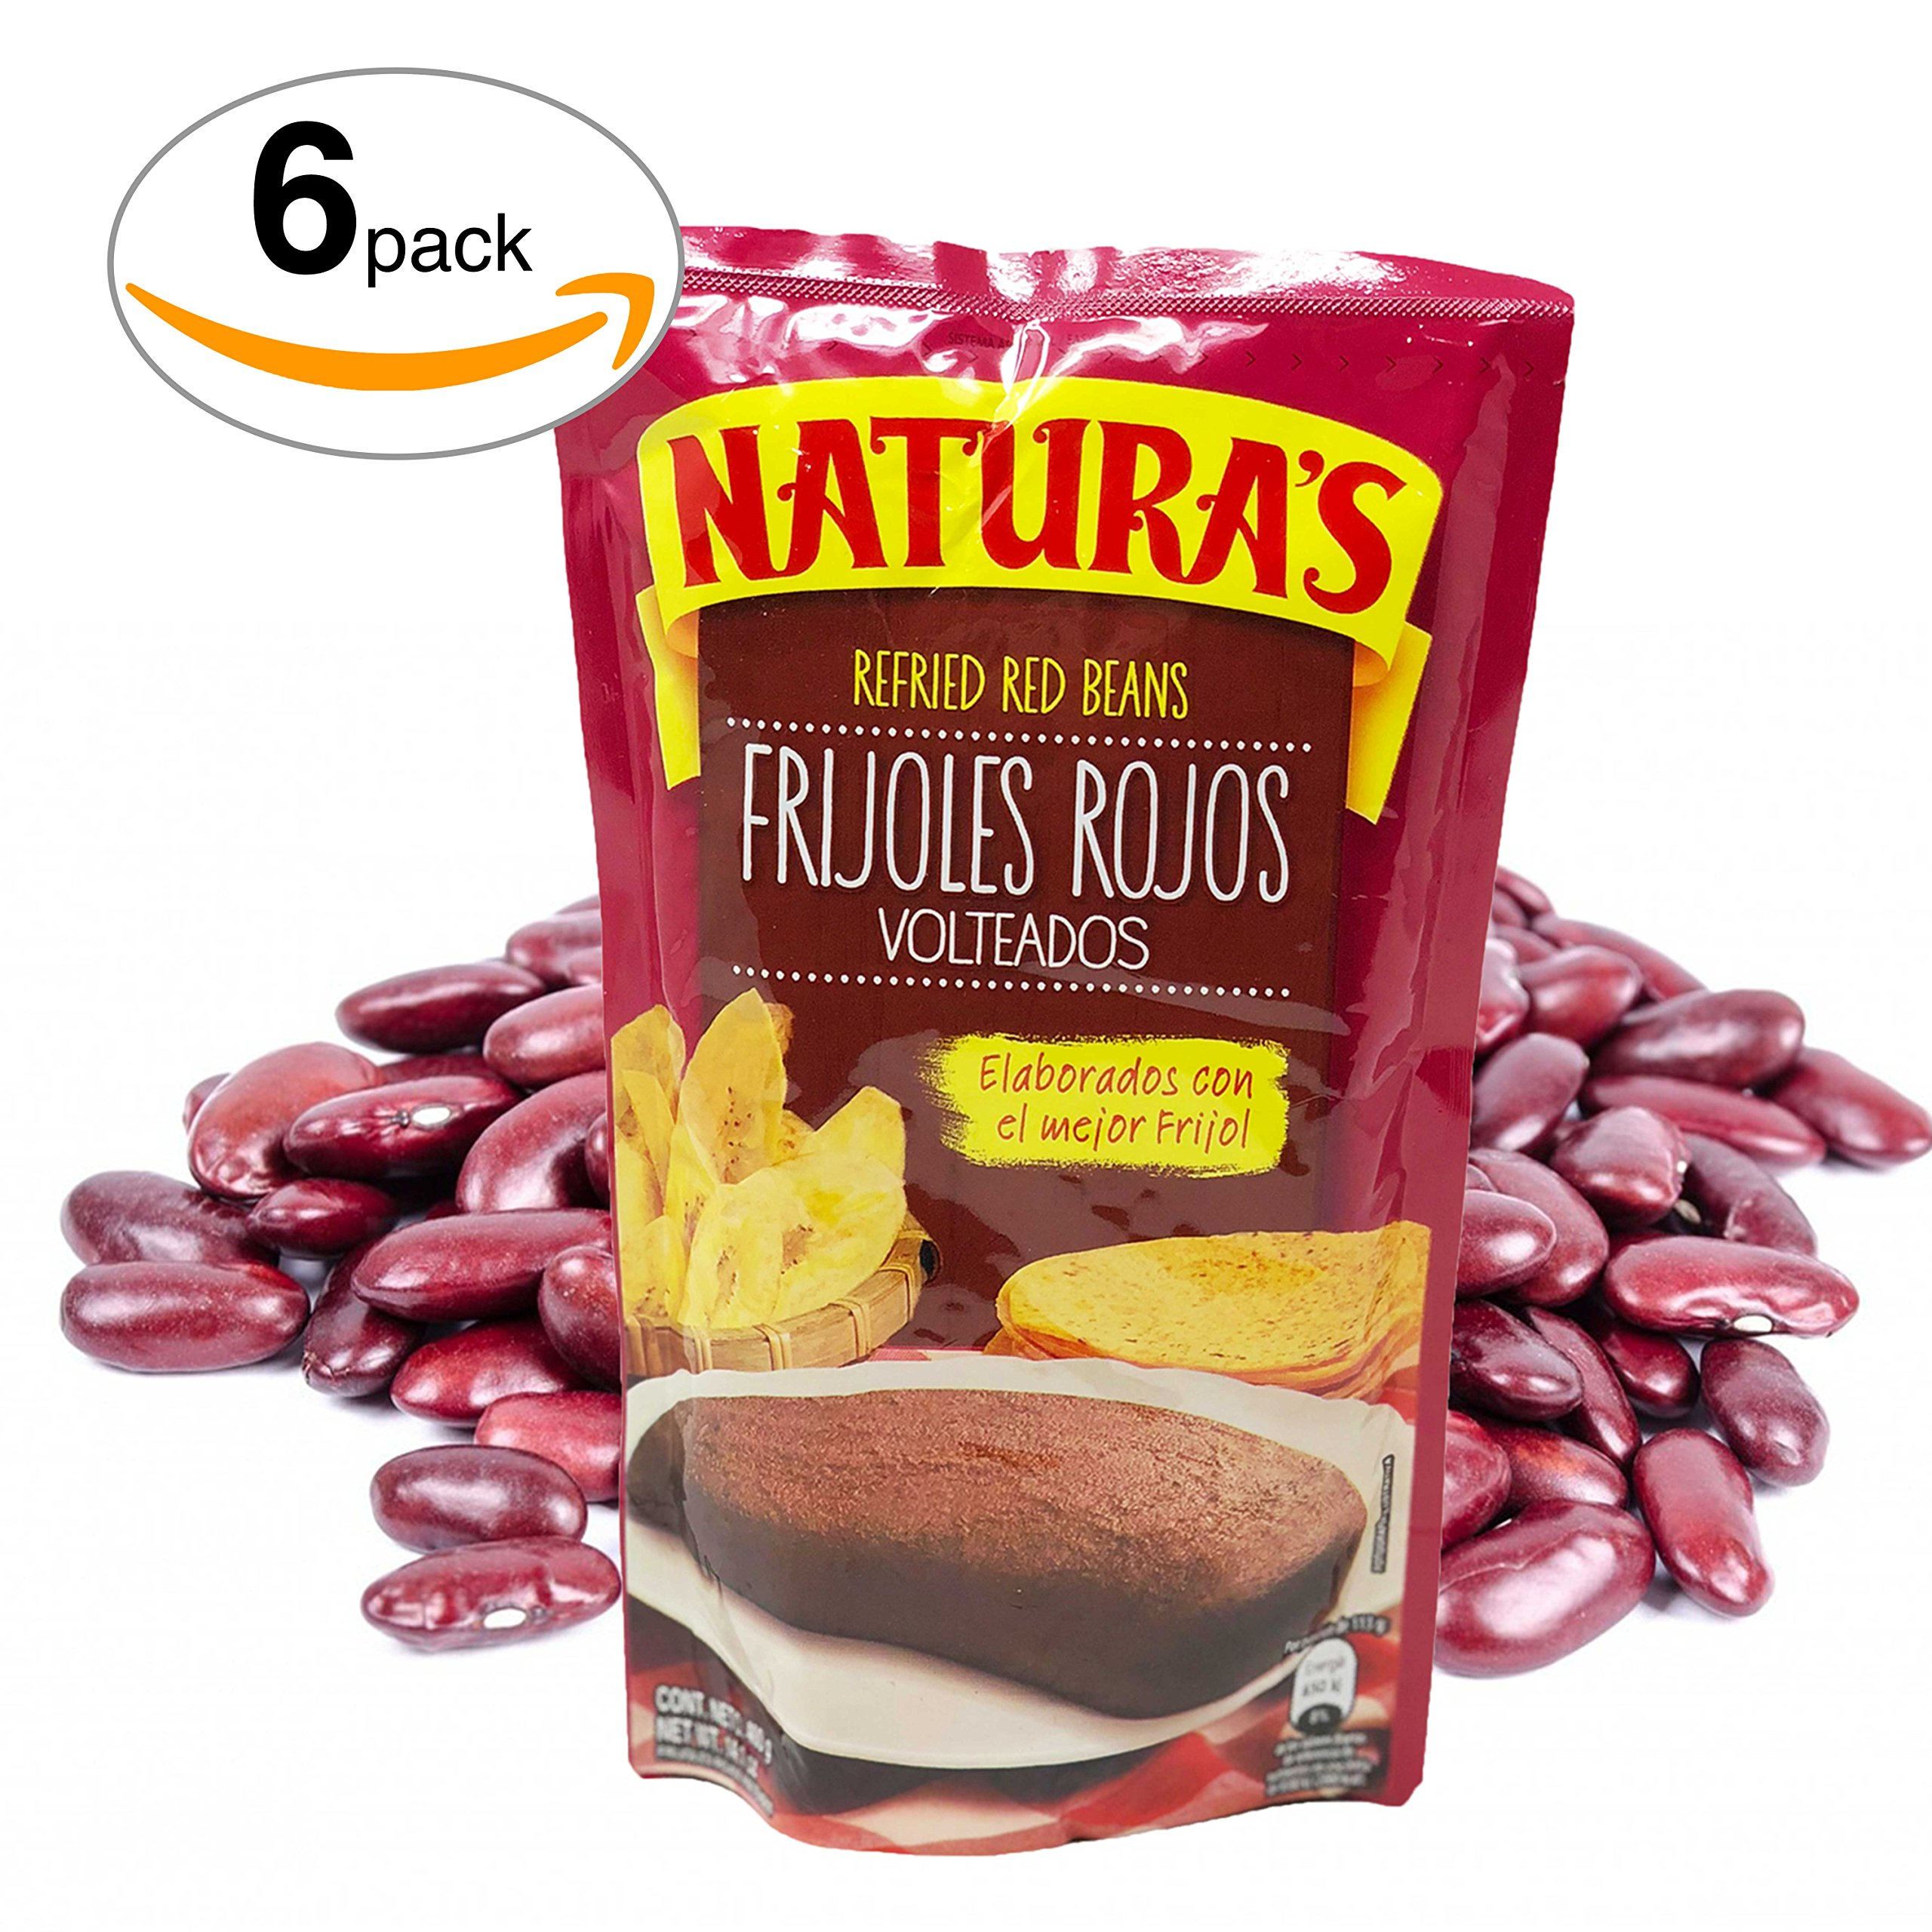 Naturas Refried Red Kidney Beans. Frijoles Rojos Volteados | 100% Plant Based | Ready To Serve| Made With Ground Beans of Beans|No Preservative,No Artificial Colors|100% Natural(800g,28.2 oz)6Pack by NATURA'S